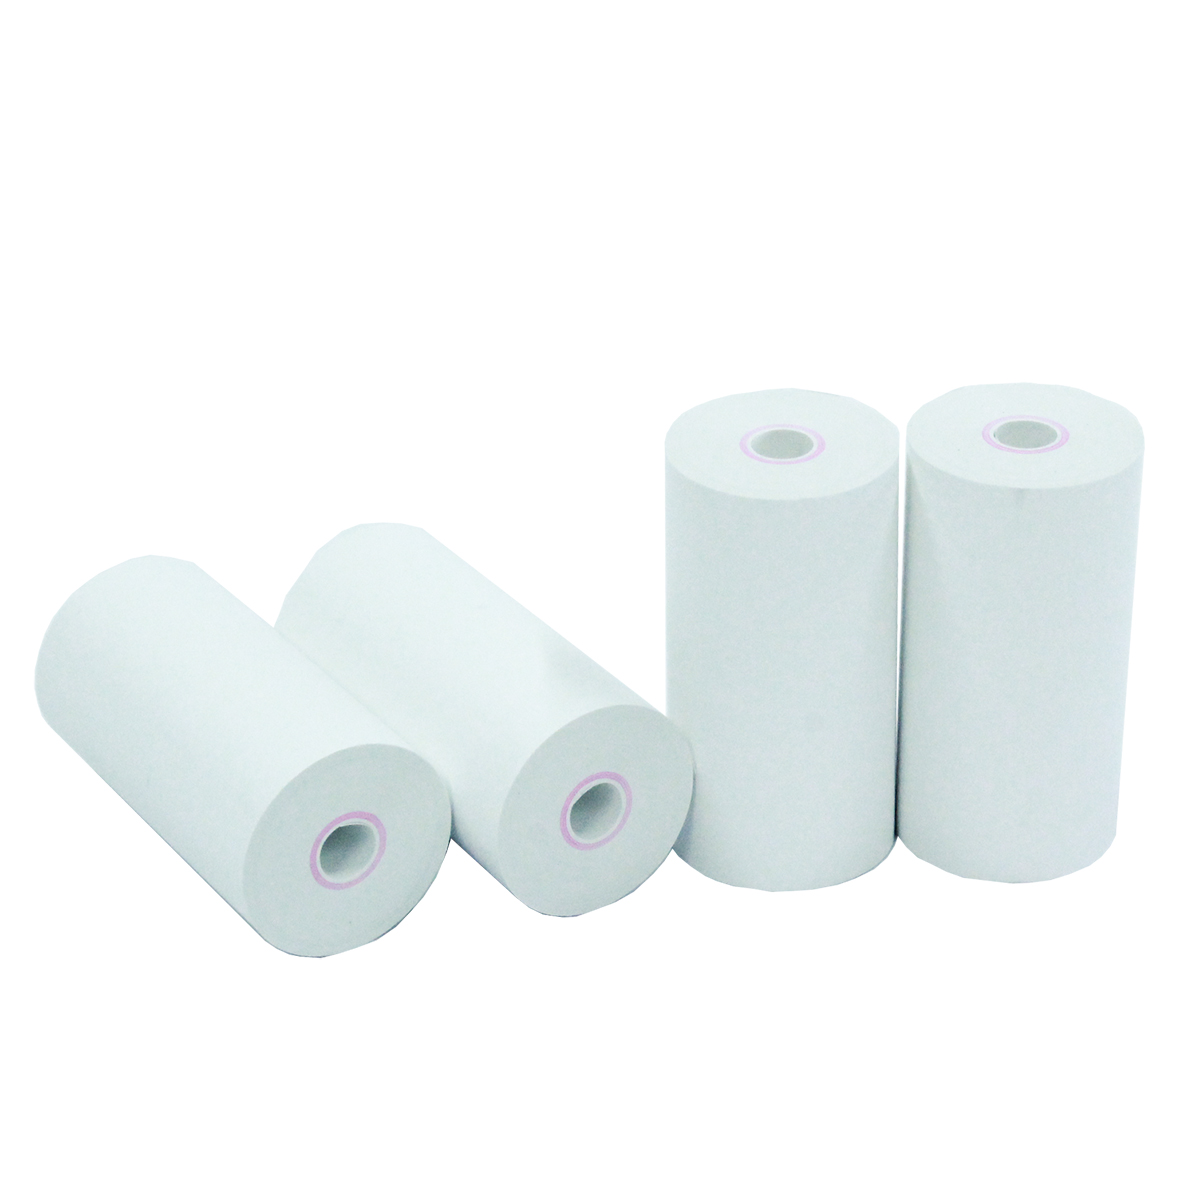 Heat-sensitive cash register rolled paper 58*30*08 (core reply) normal type  (20 packs)